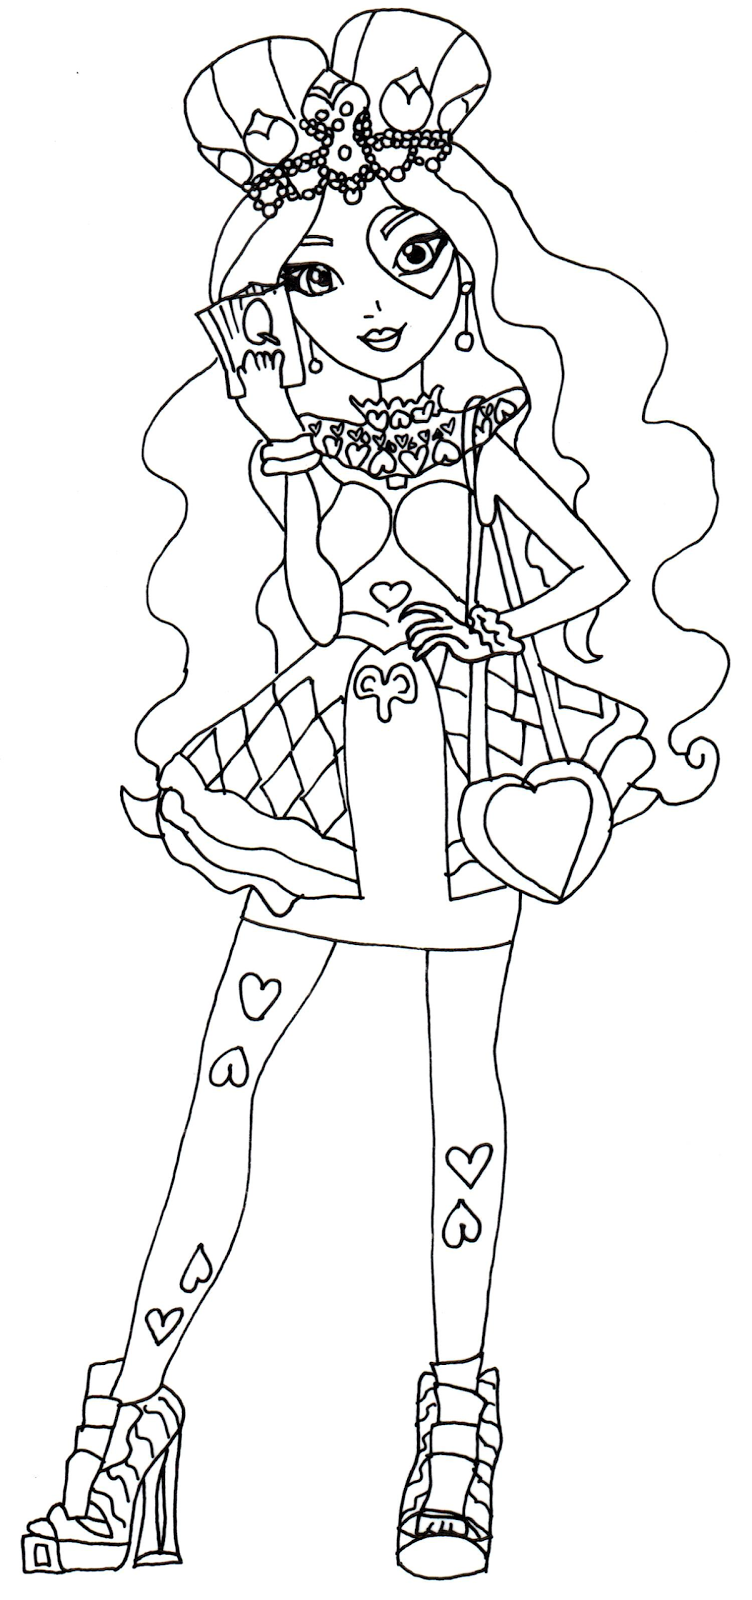 Lizzie Hearts Ever After High Coloring Page Heart Coloring Pages